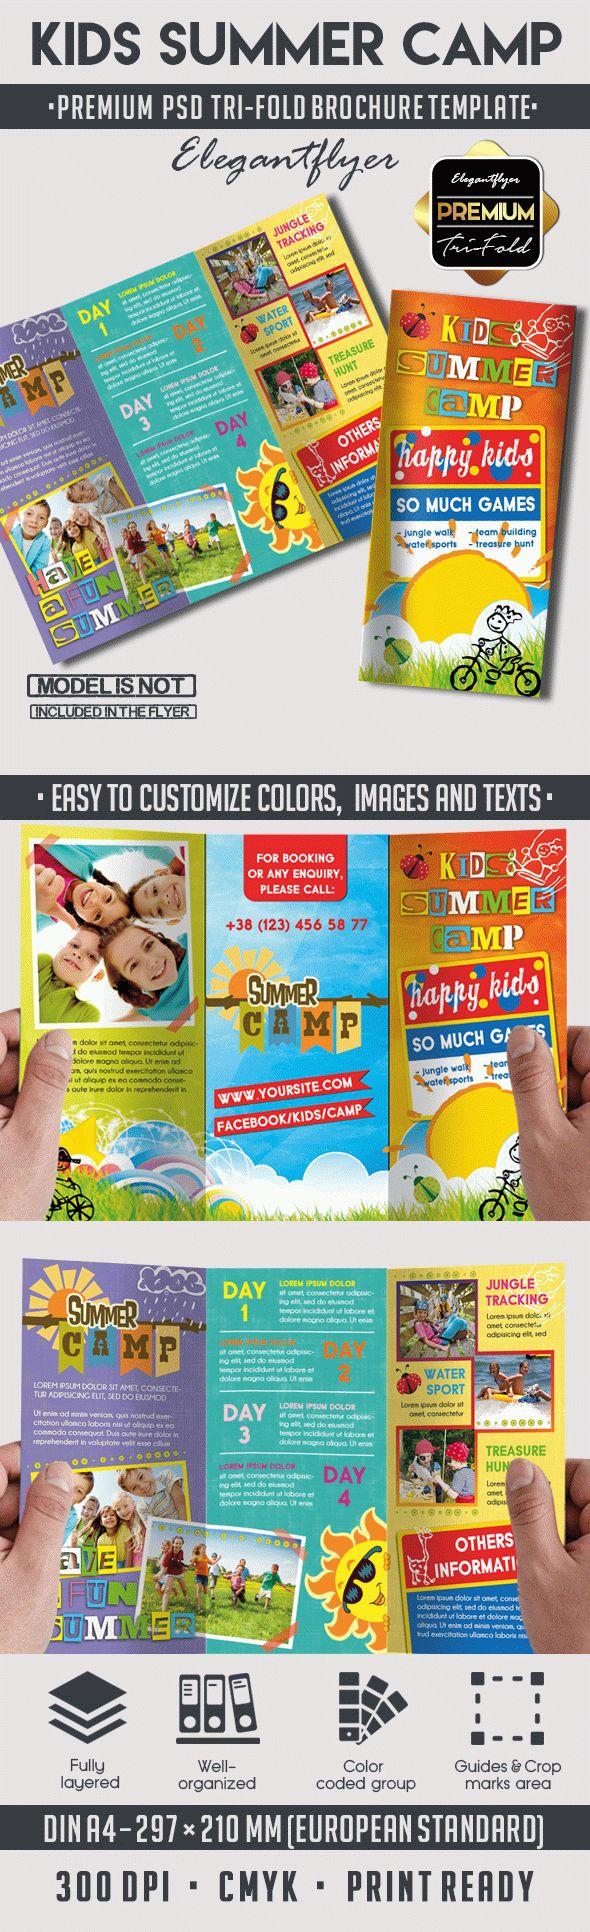 tri fold brochure kids summer camp